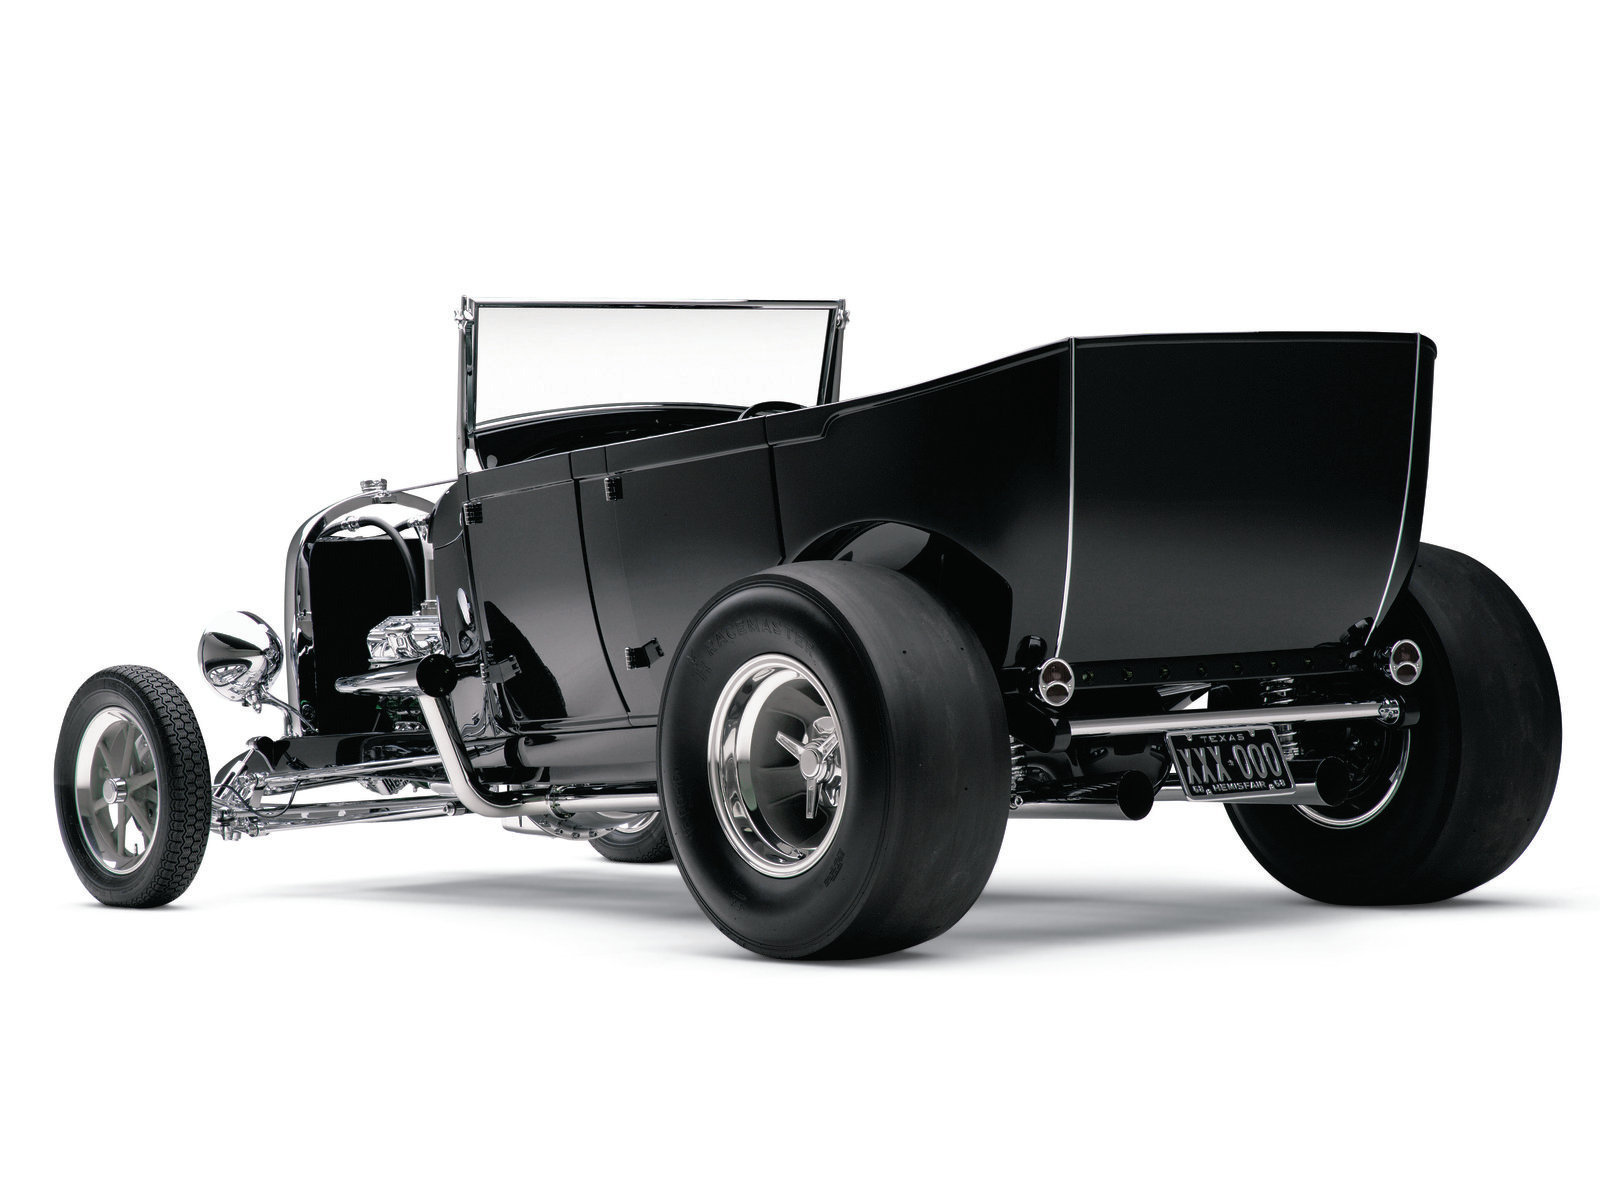 New wheel tubs and inner skins for the quarter-panels are just a couple of the metal fab'ing features Joe incorporated into his tub. The rod rolls on M&H-wrapped 16x10 magnesium Halibrands and 15x4 12-spoke wheels shod in Michelin 135-15 rubber.